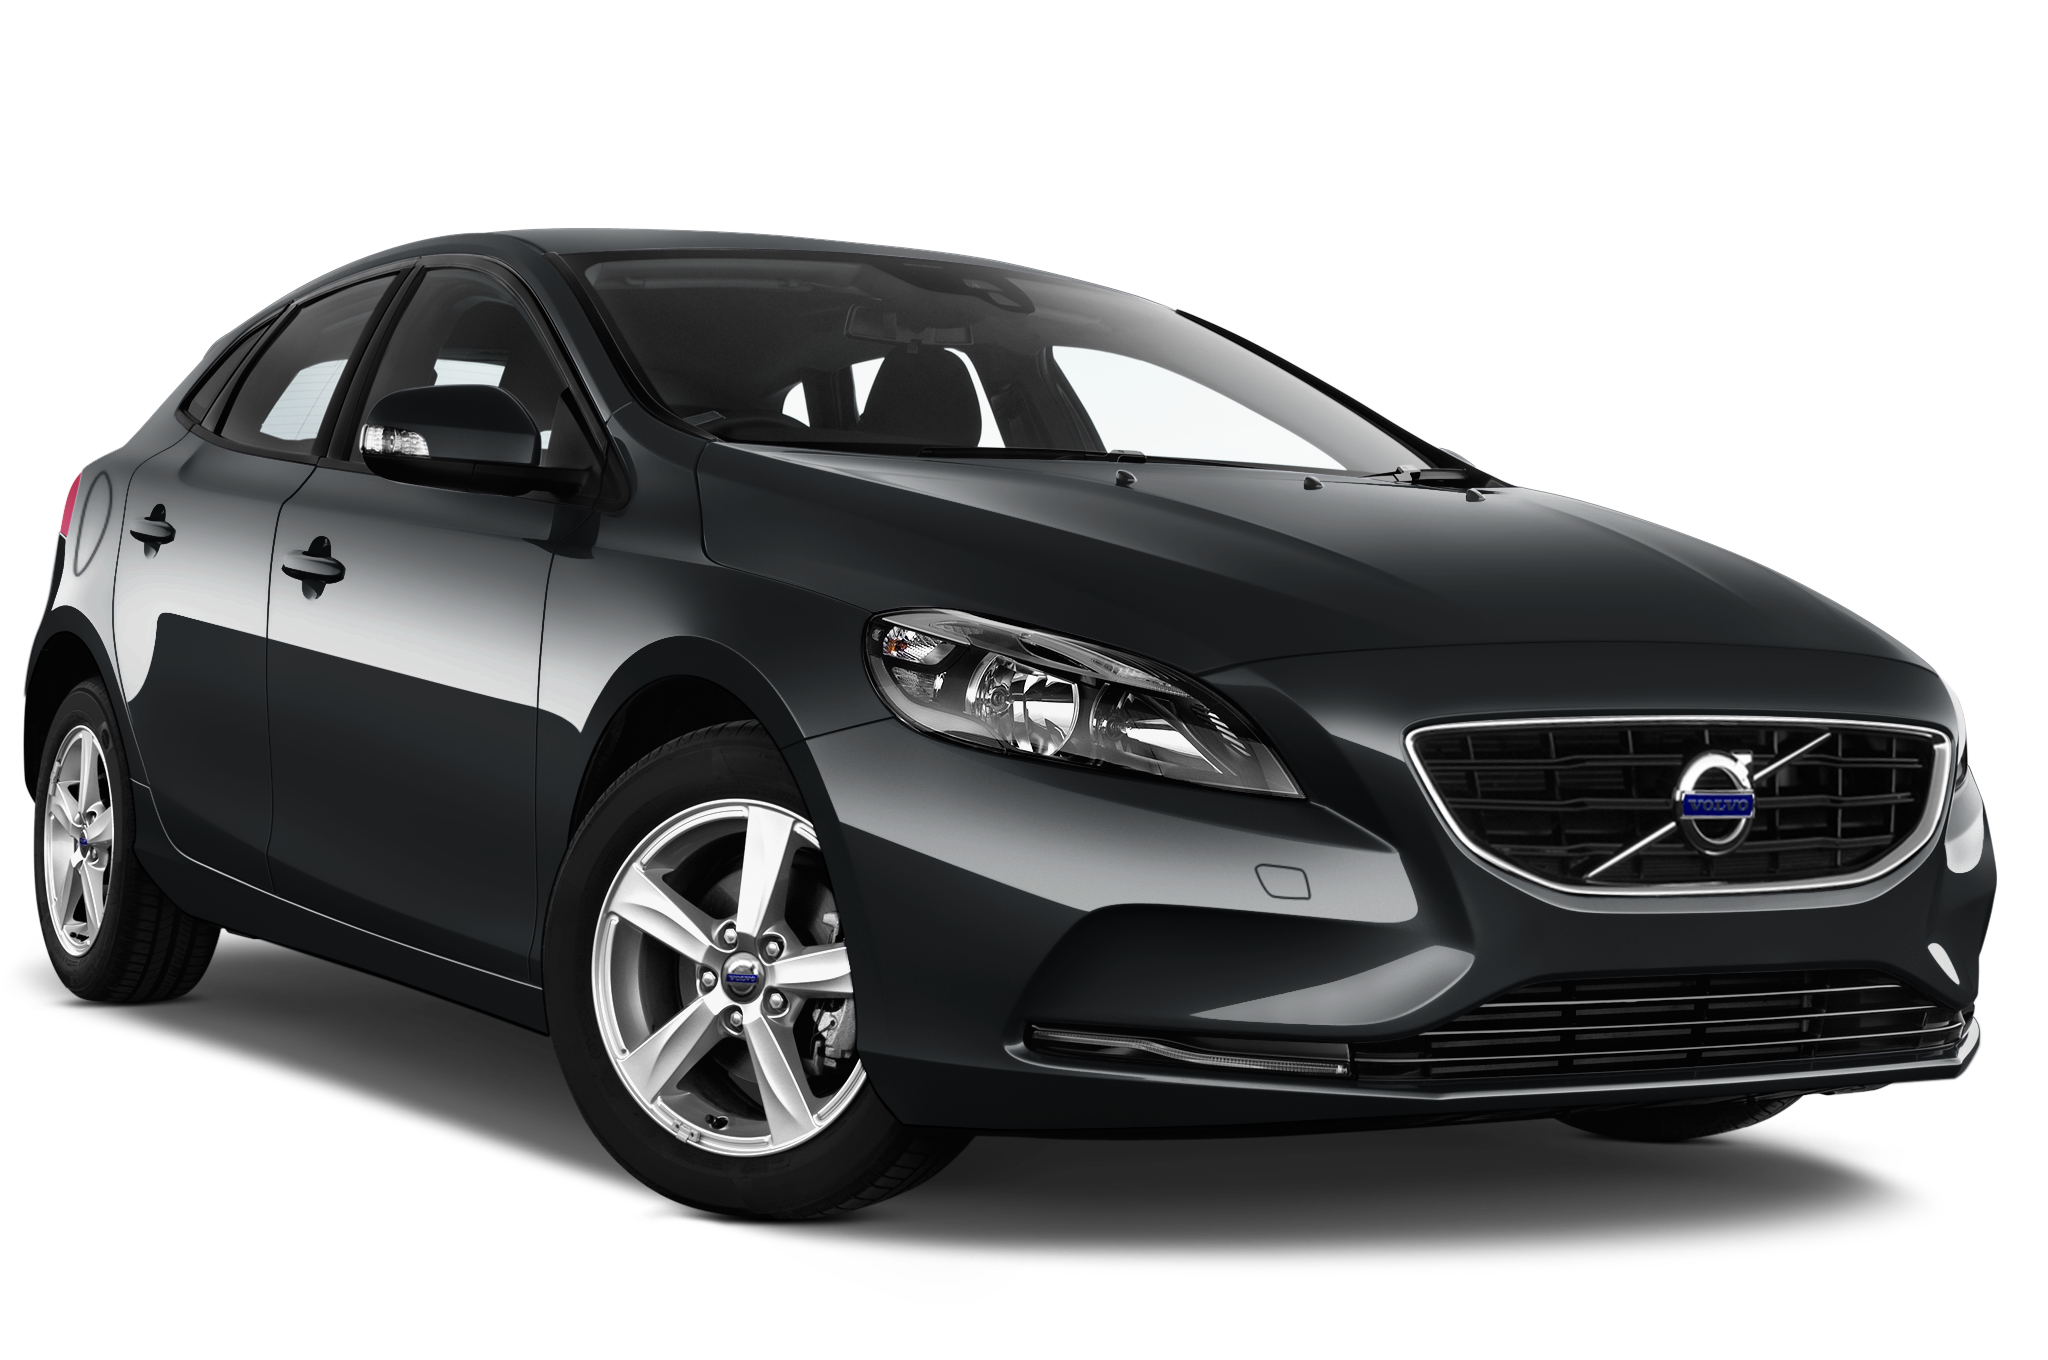 Volvo V40 company car front view